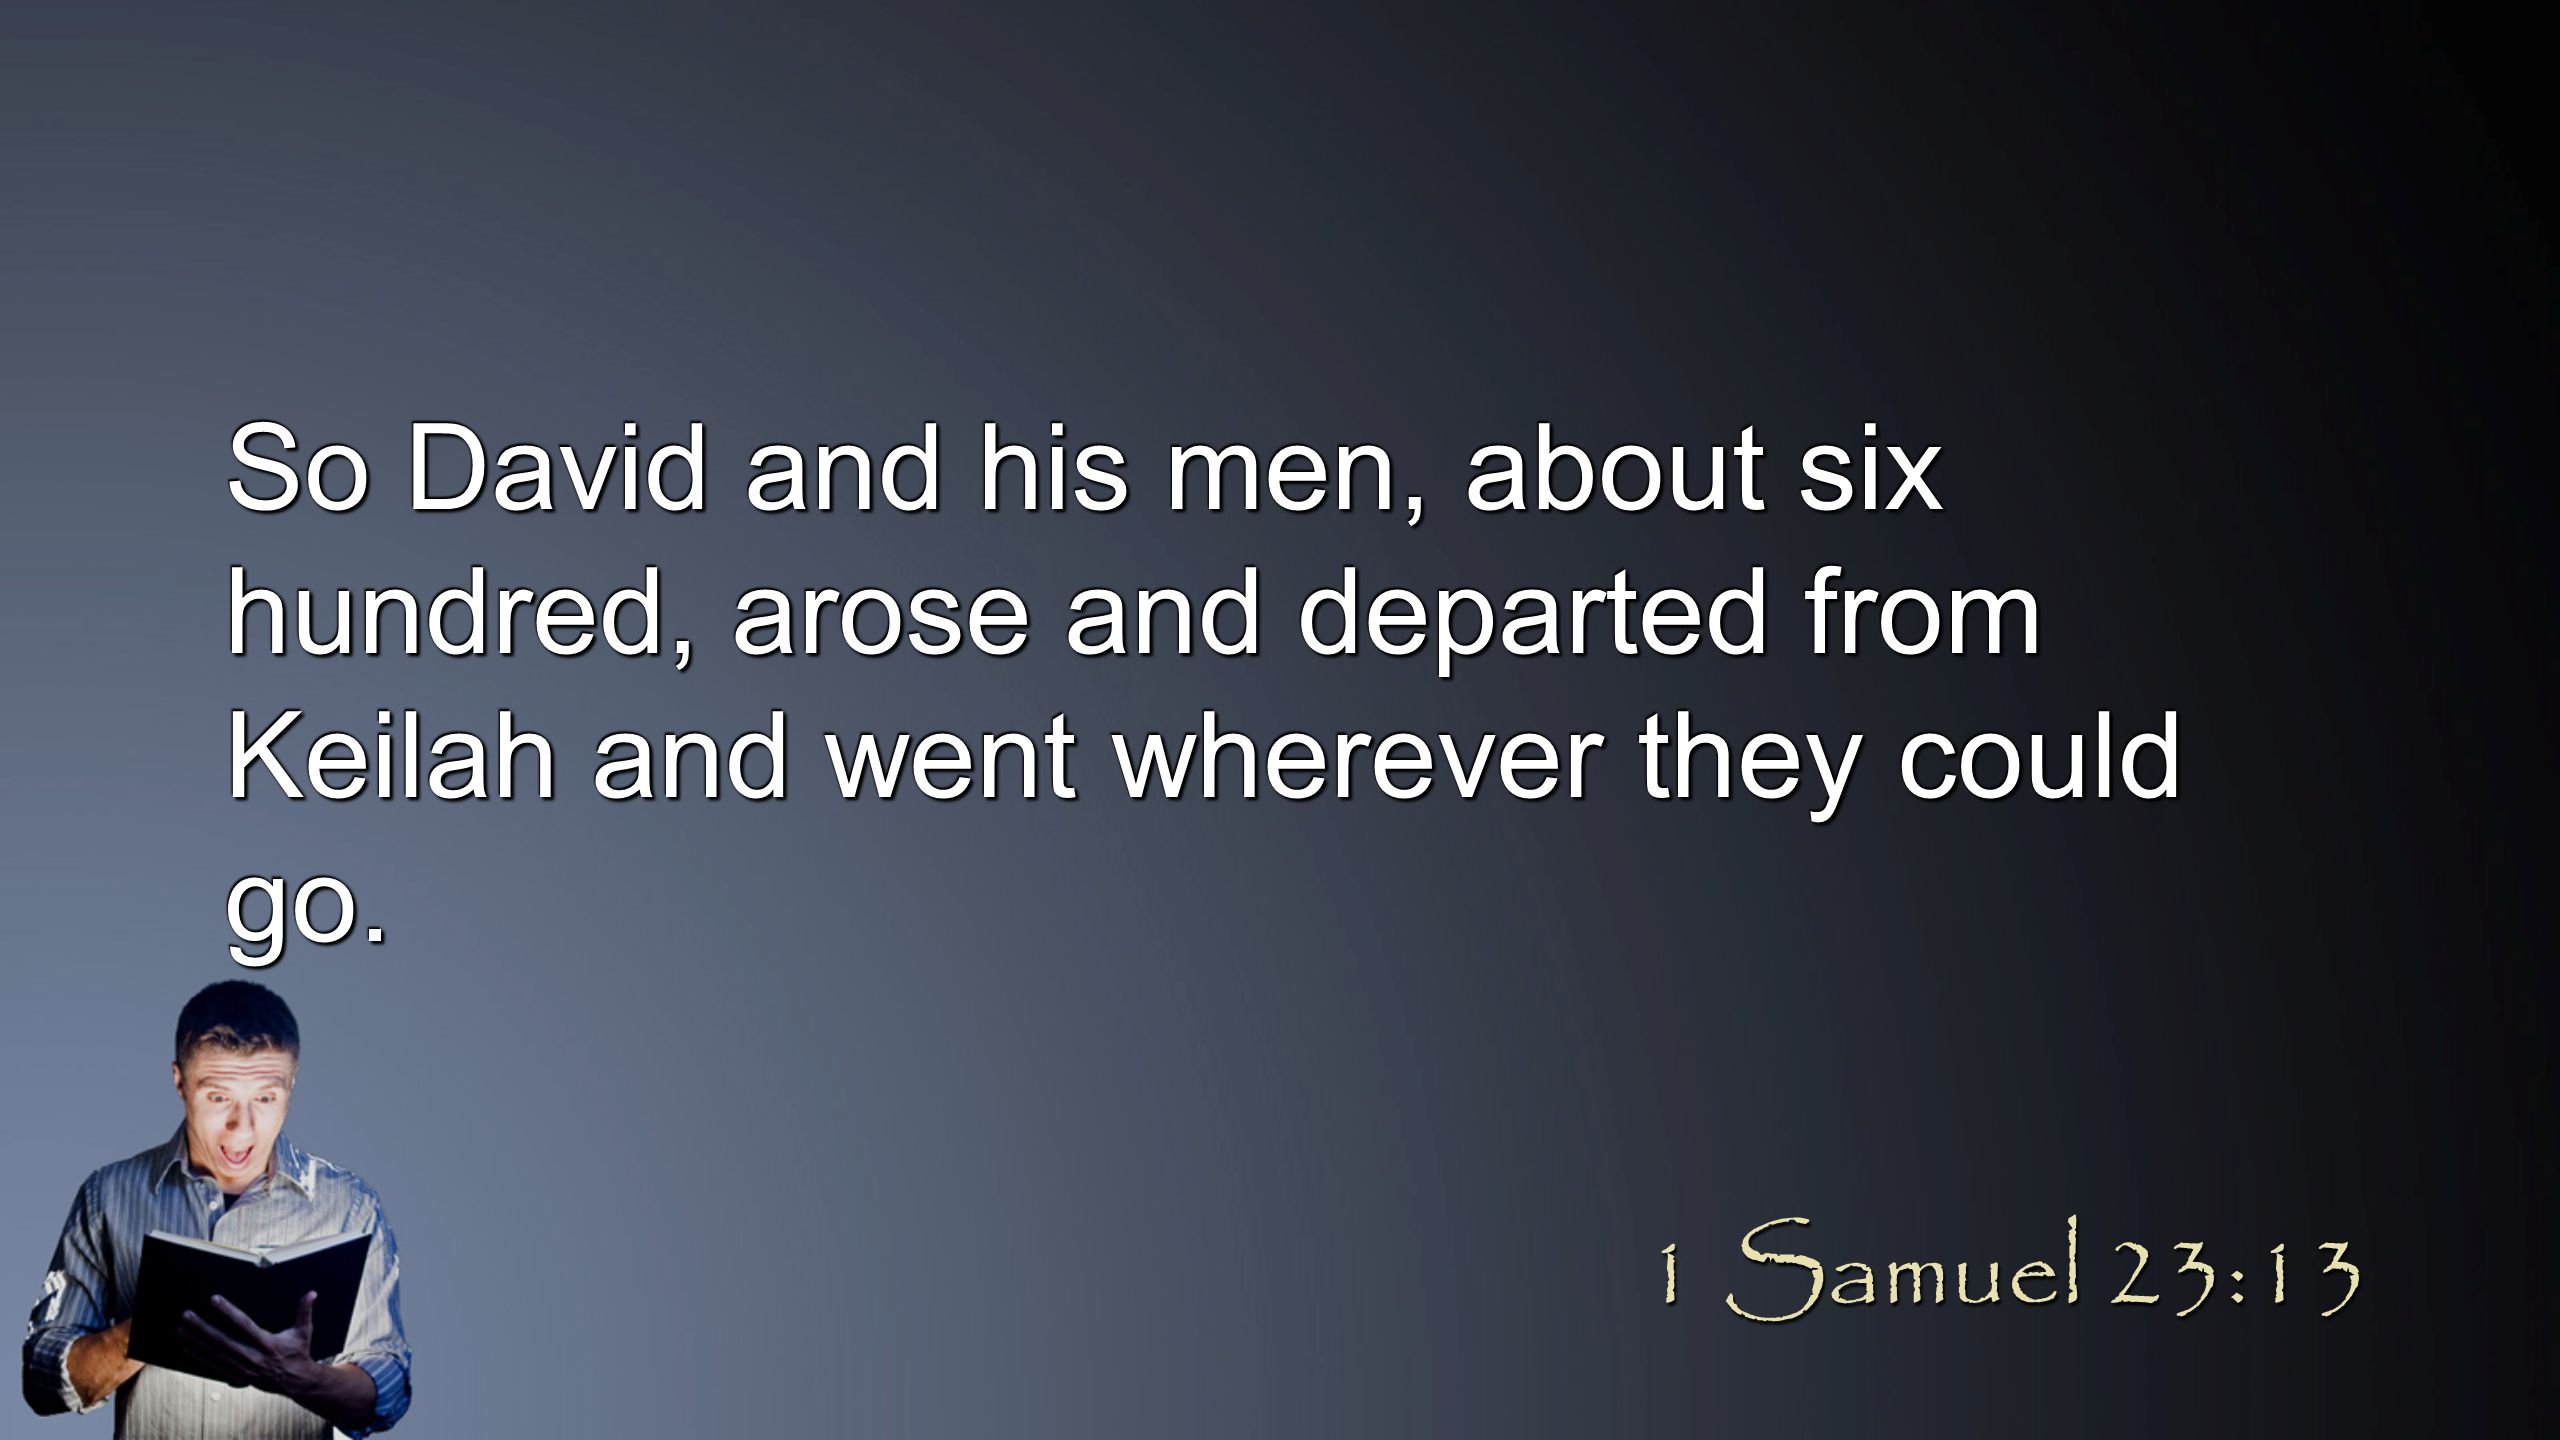 So David and his men, about six hundred, arose and departed from Keilah and went wherever they could go. 1 Samuel 23:13